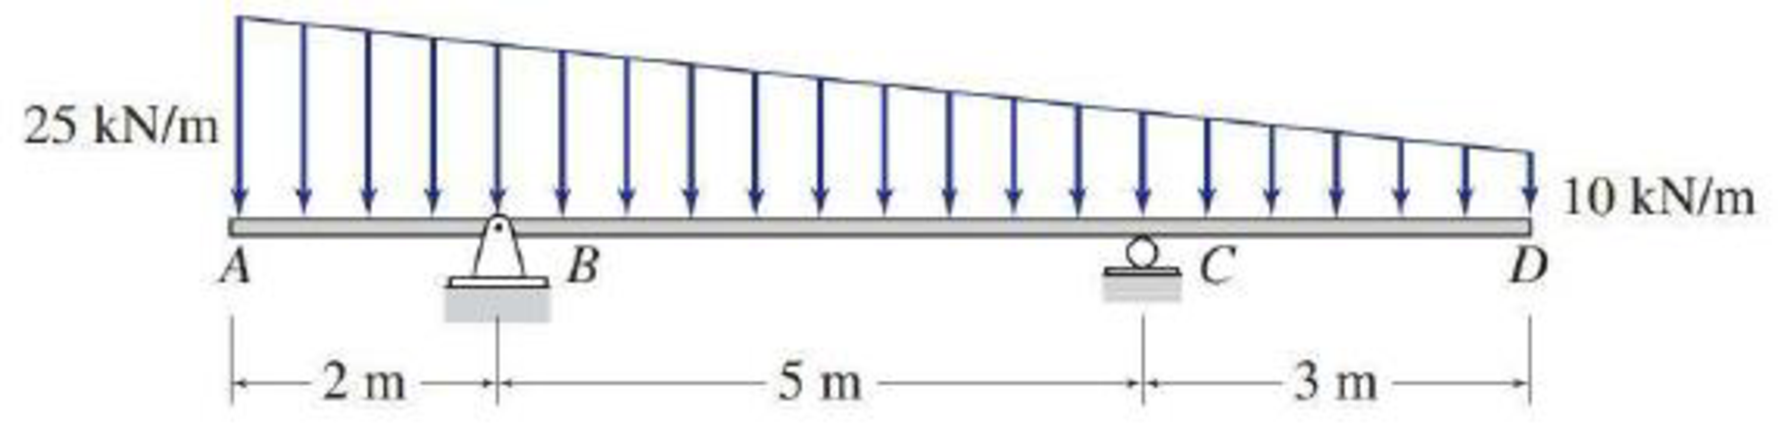 Chapter 5, Problem 27P, 5.12 through 5.28 Determine the equations for shear and bending moment for the beam shown. Use the